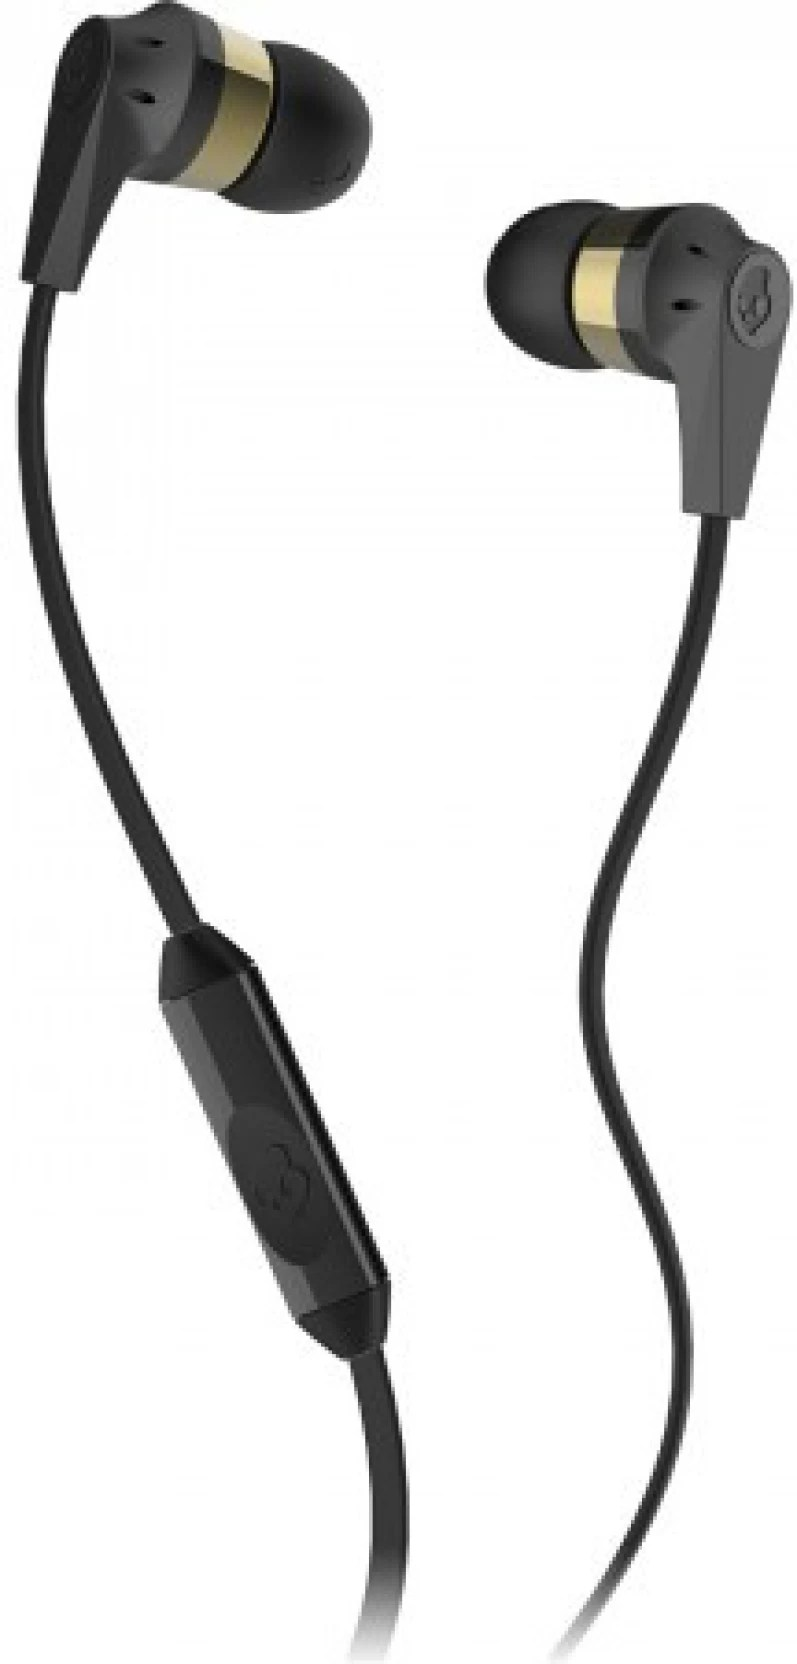 skullcandy s2ikdy 144 wired headset with mic gold black in the ear  [ 797 x 1664 Pixel ]